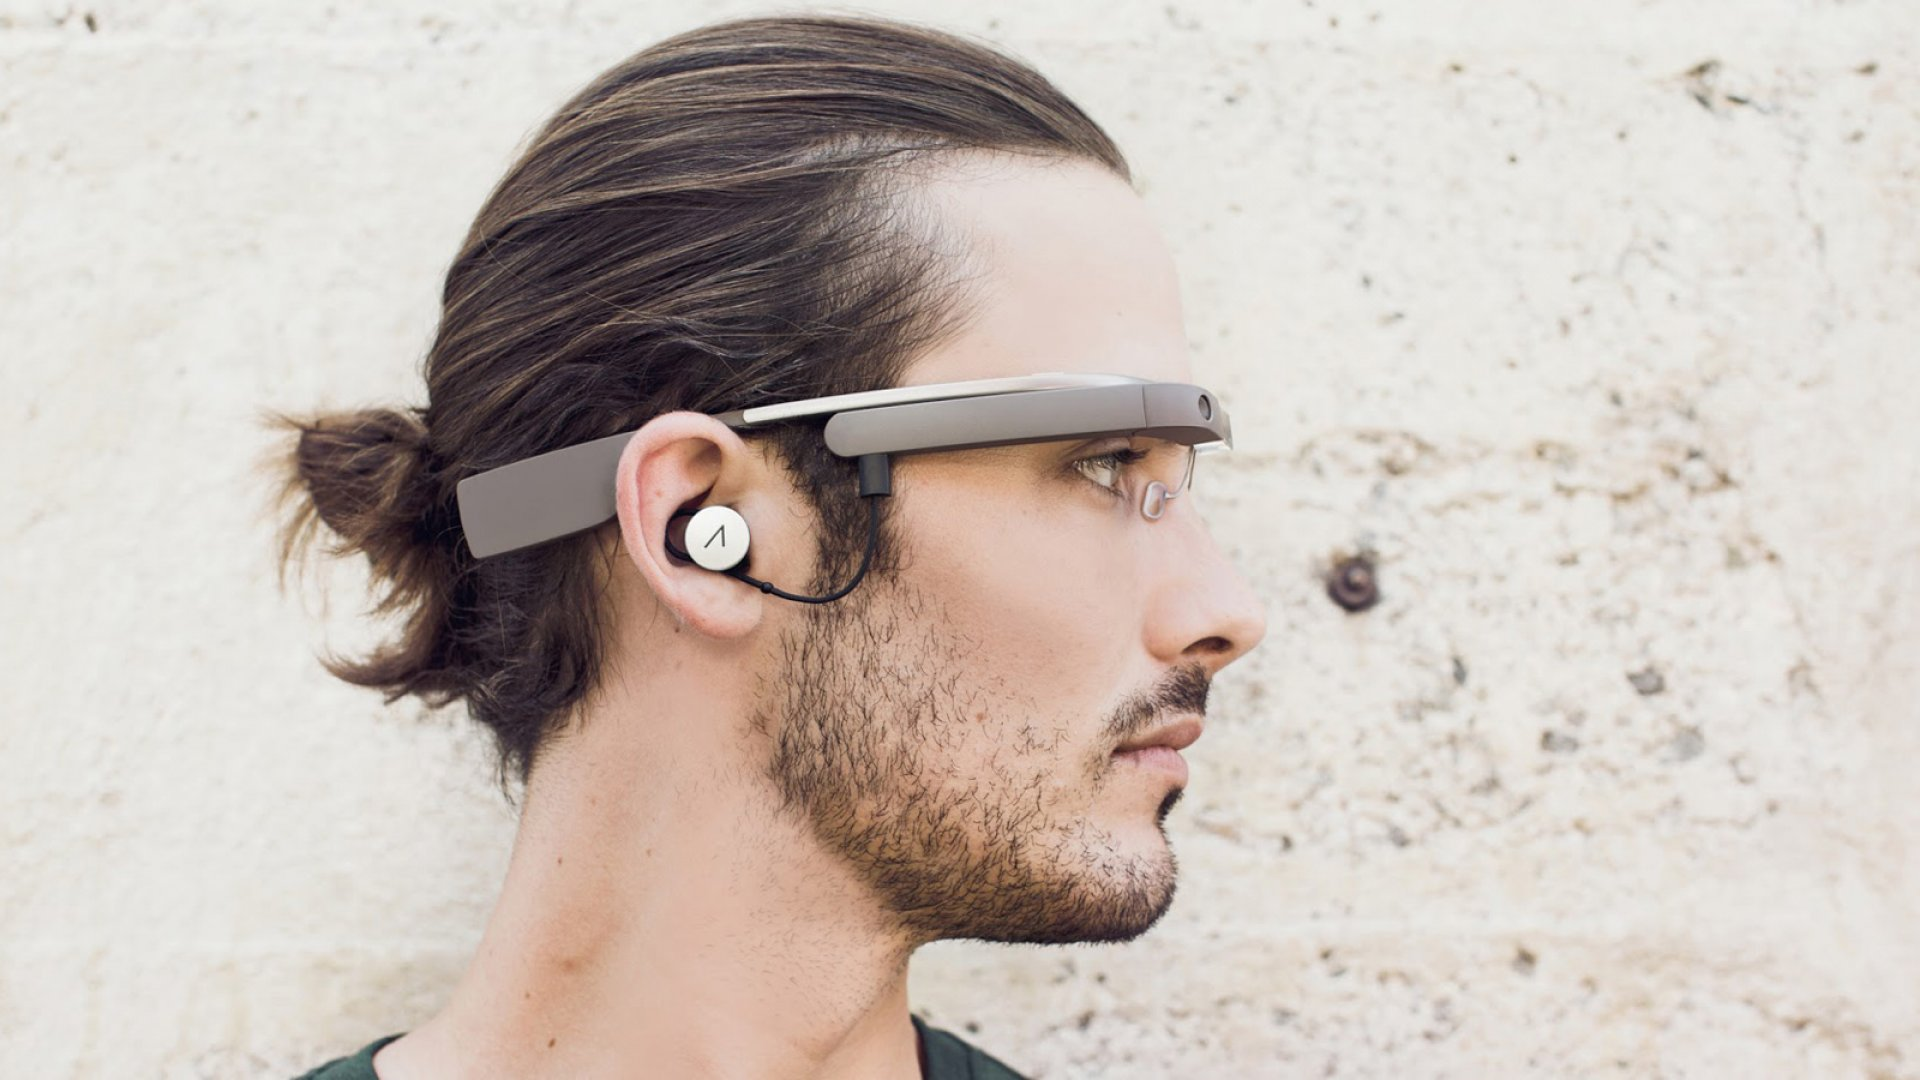 The Potentially Super Creepy Future of Wearable Tech in the Workplace